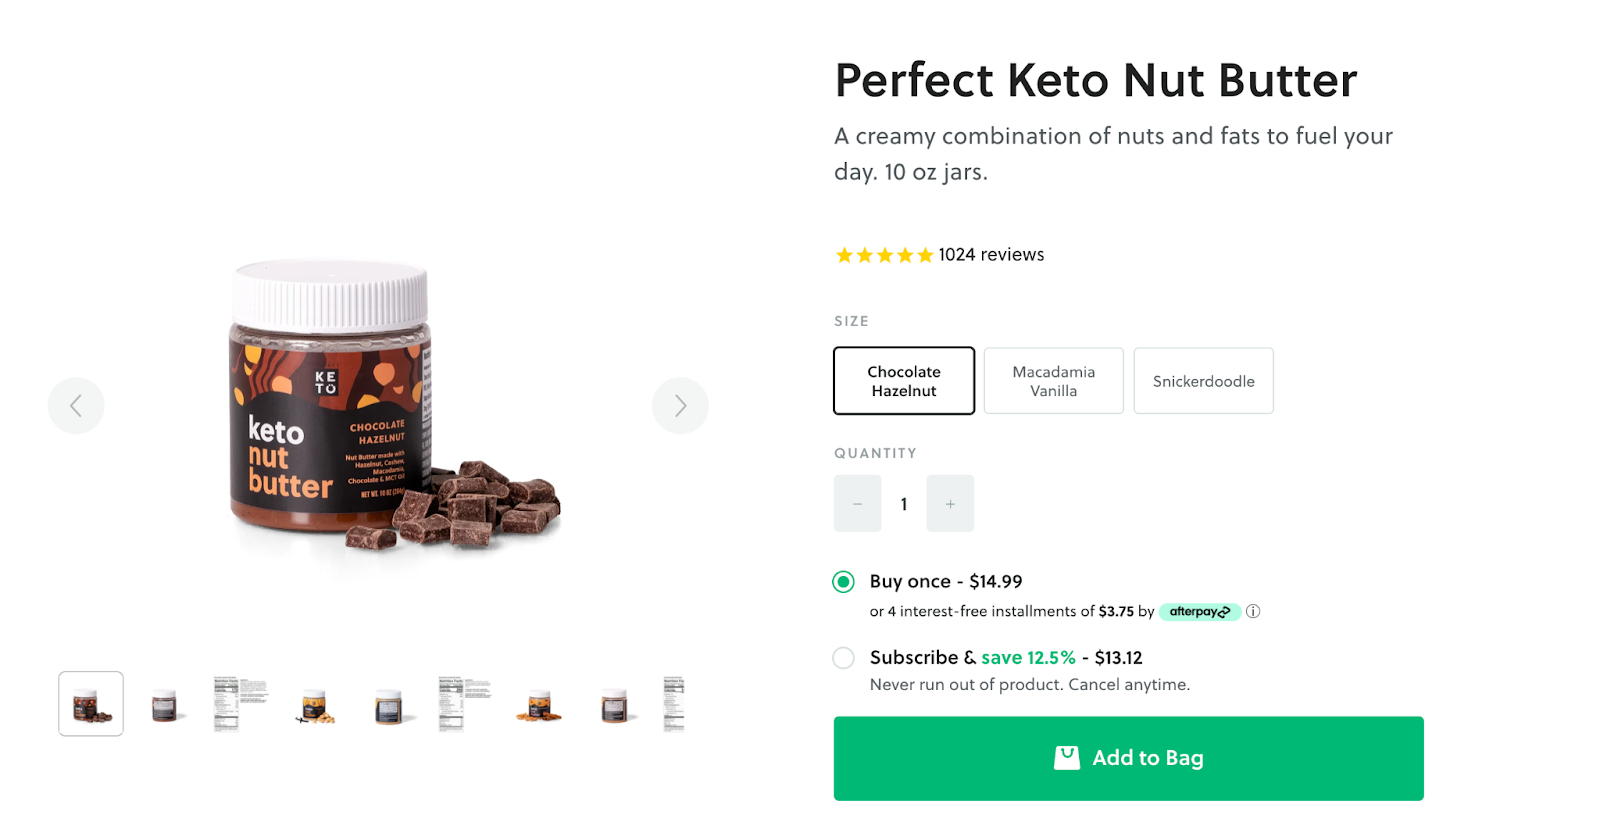 Perfect Keto Nut Butter product page